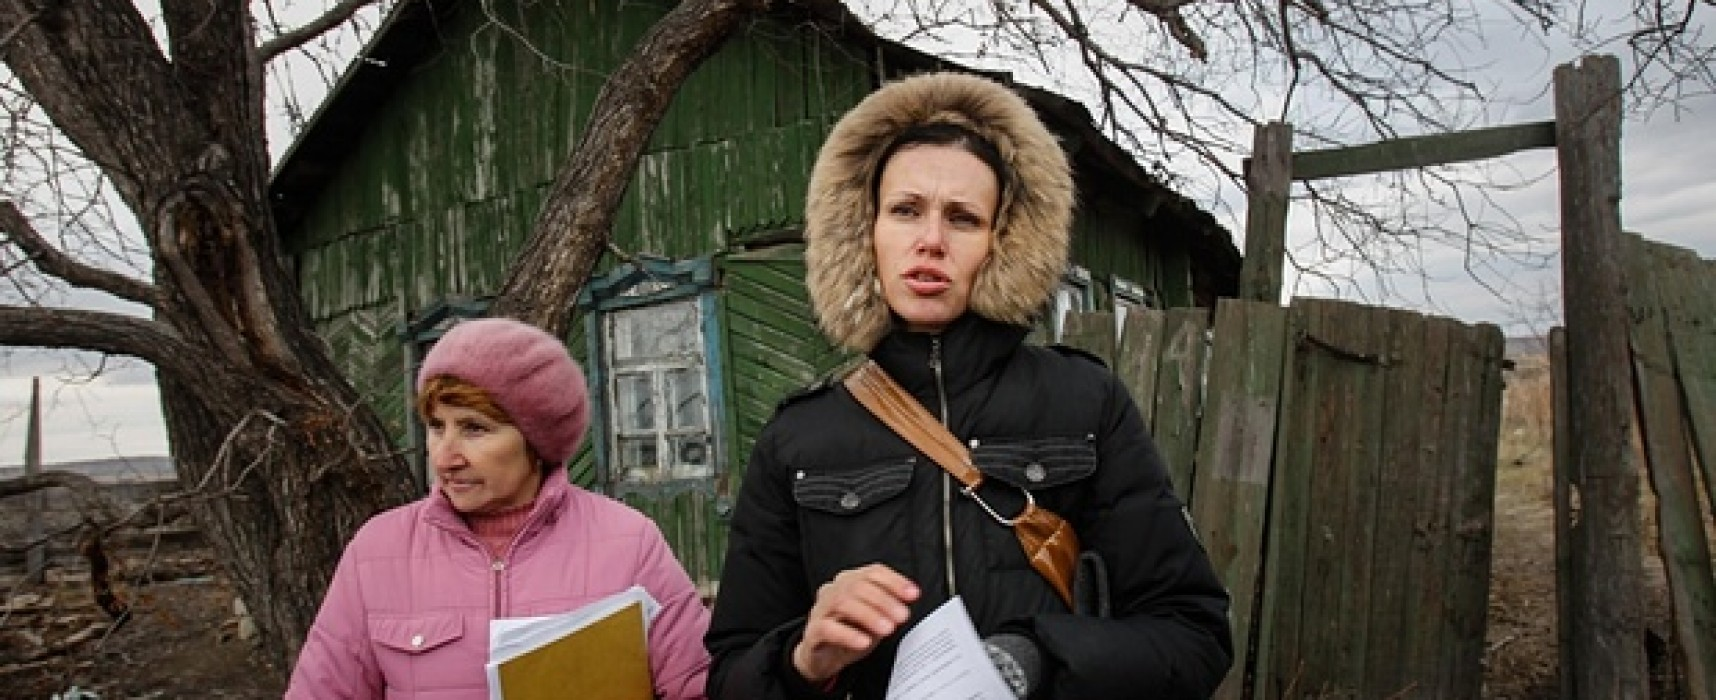 TV Witch Hunt Drives Human Rights Activist Out of Russia